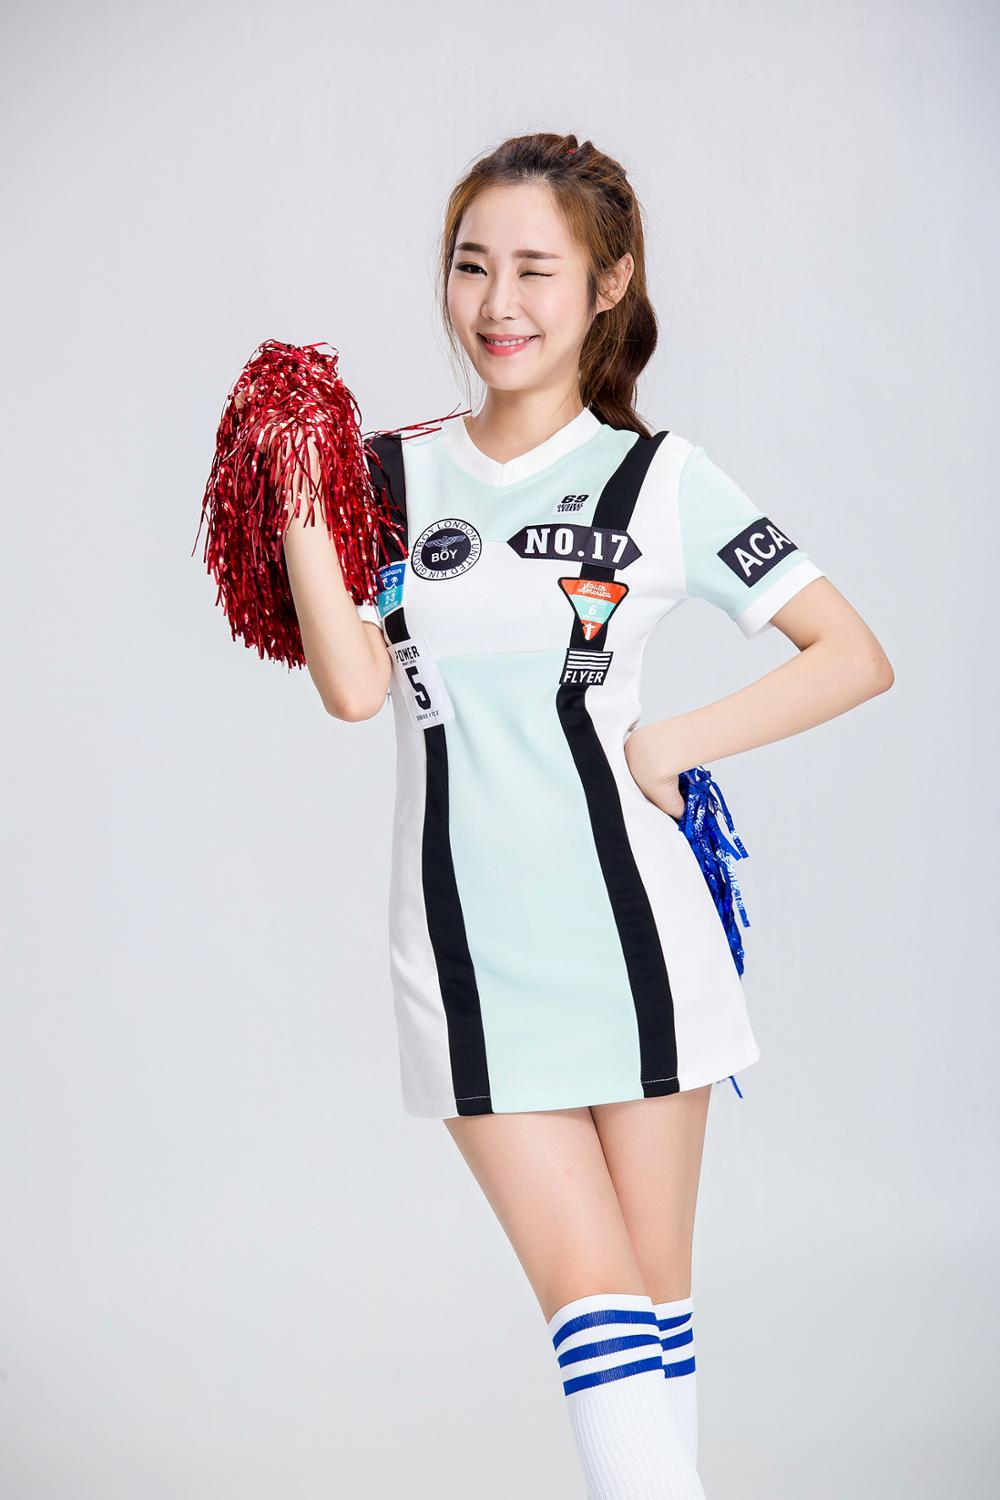 Sexy Woman Racer Uniform High School Girl Cheerleader Costume Nightclub DS Fancy Dresses